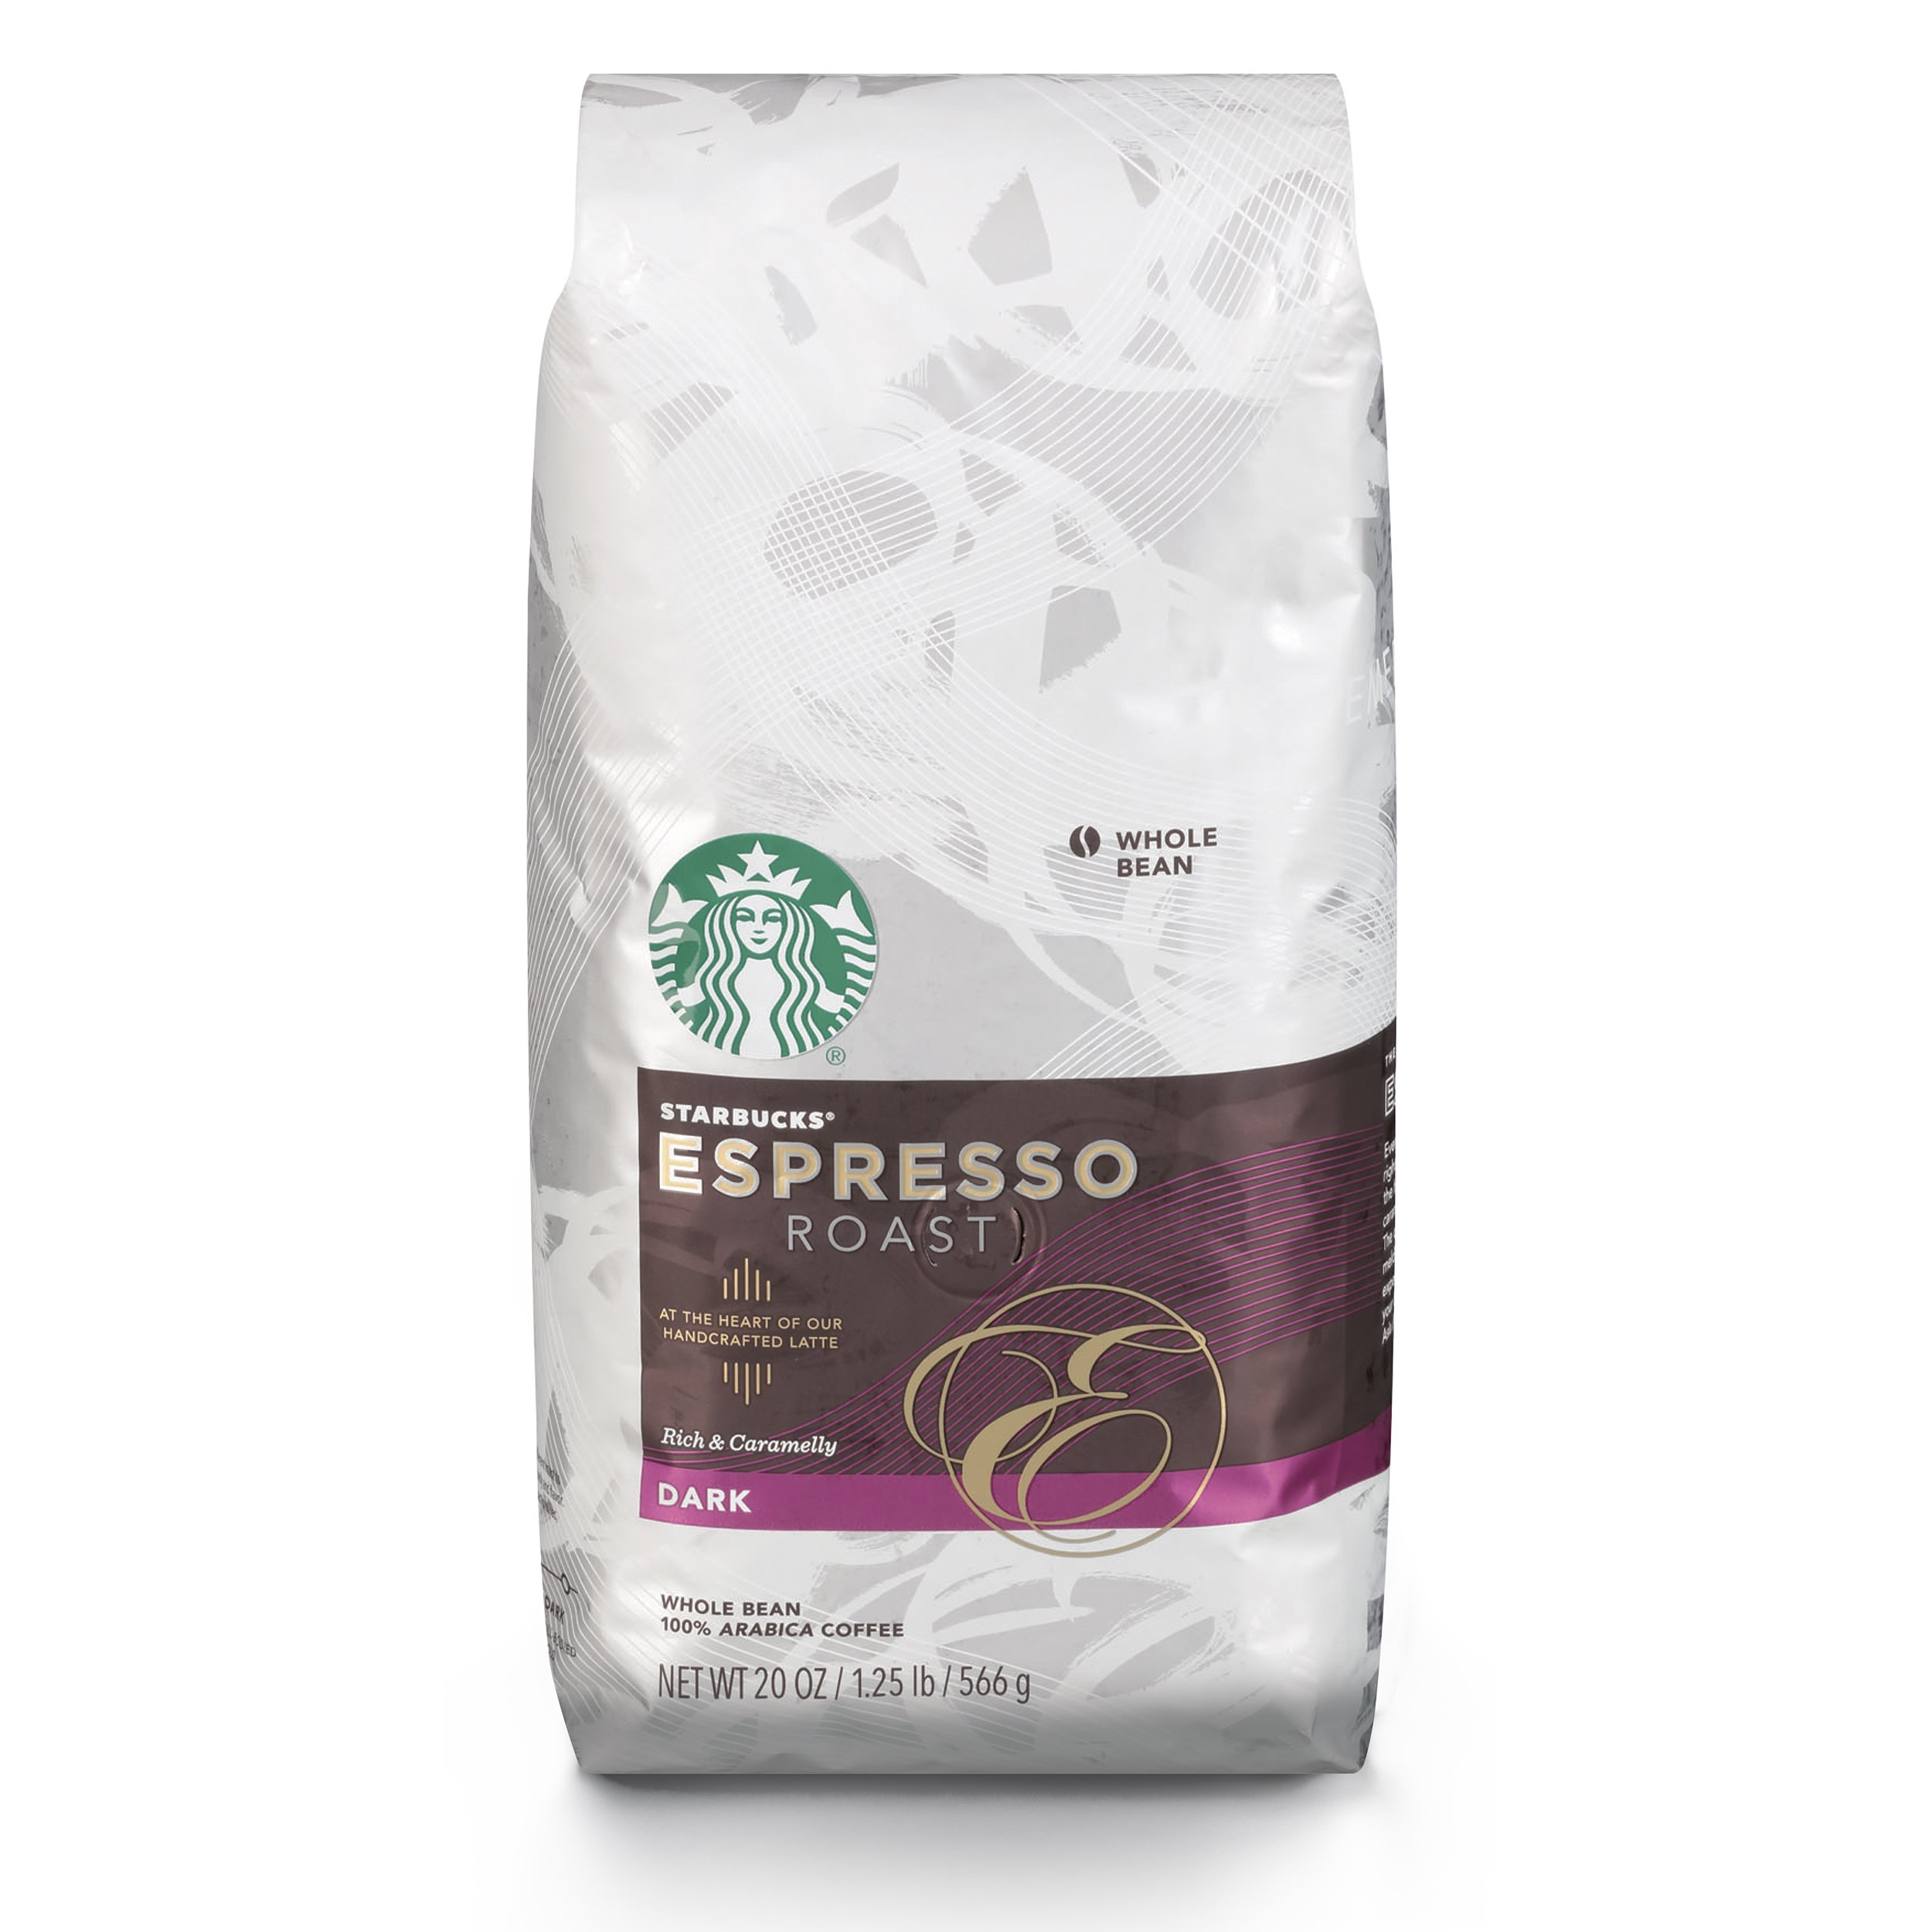 Starbucks Espresso Dark Roast Whole Bean Coffee, 20-Ounce Bag